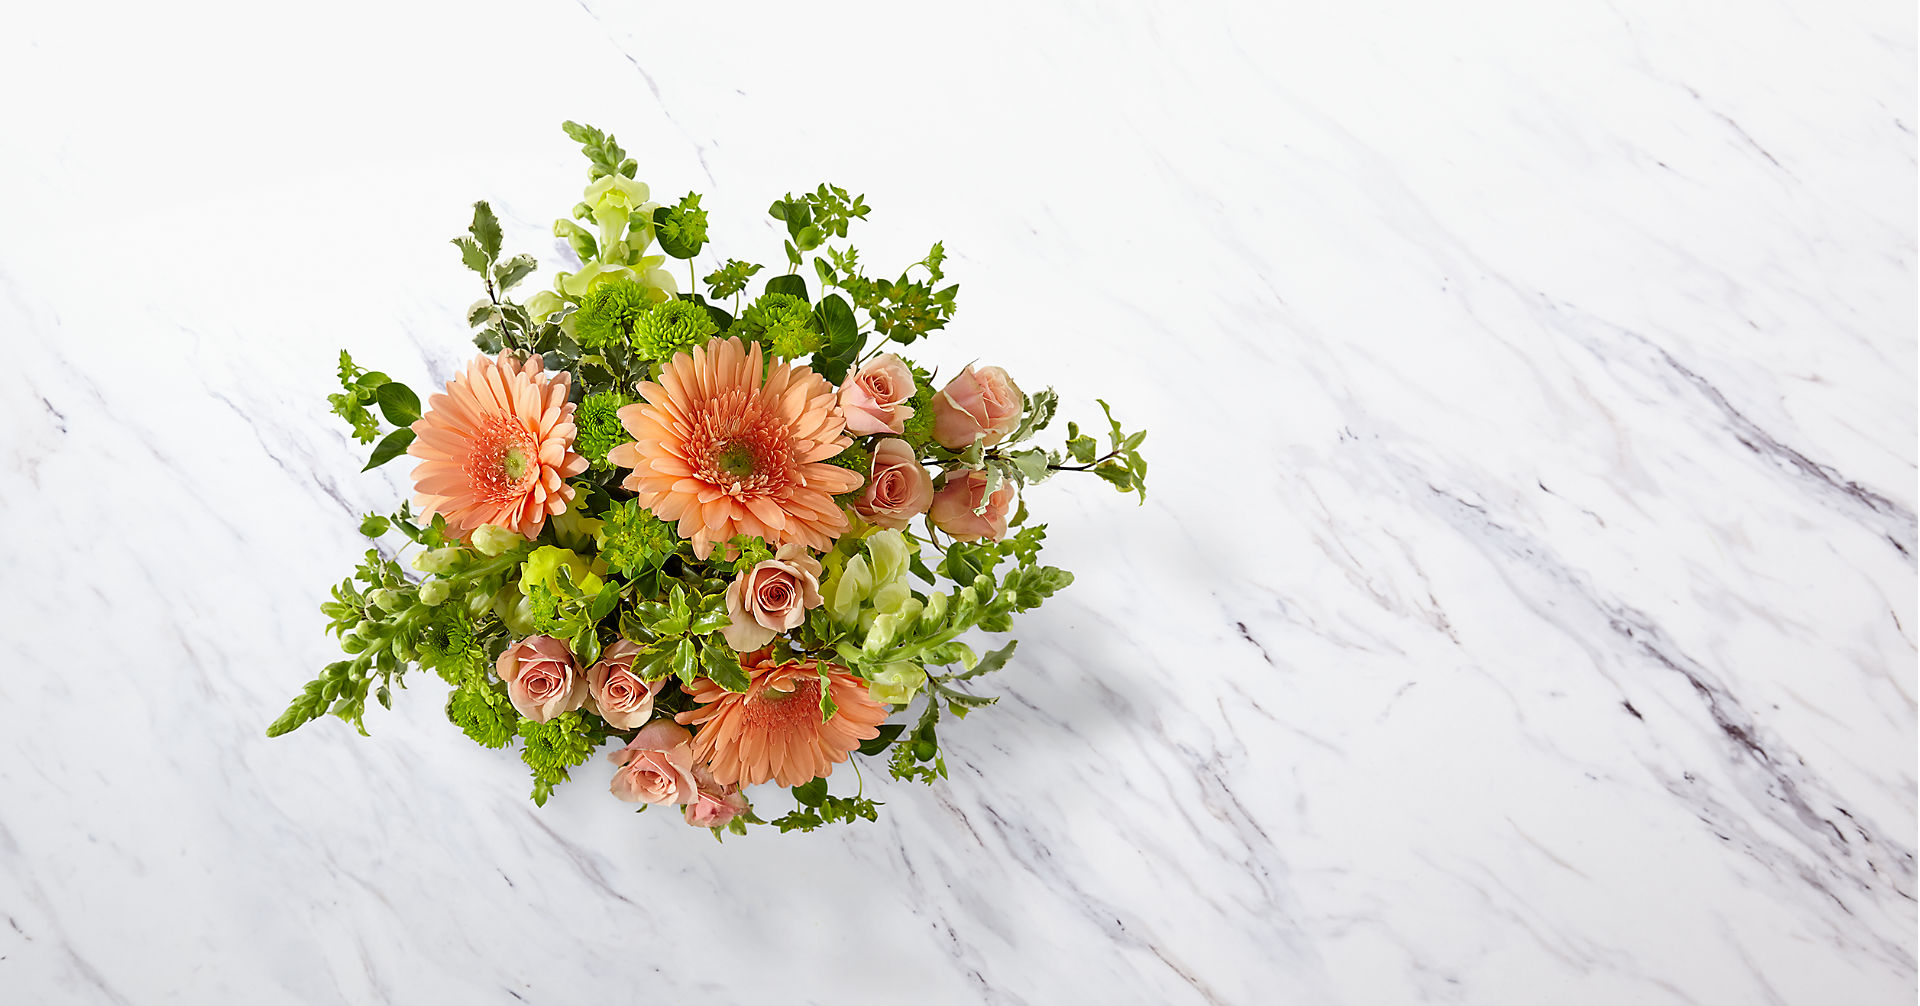 Peachy Keen™ Bouquet by FTD® - Image 2 Of 2